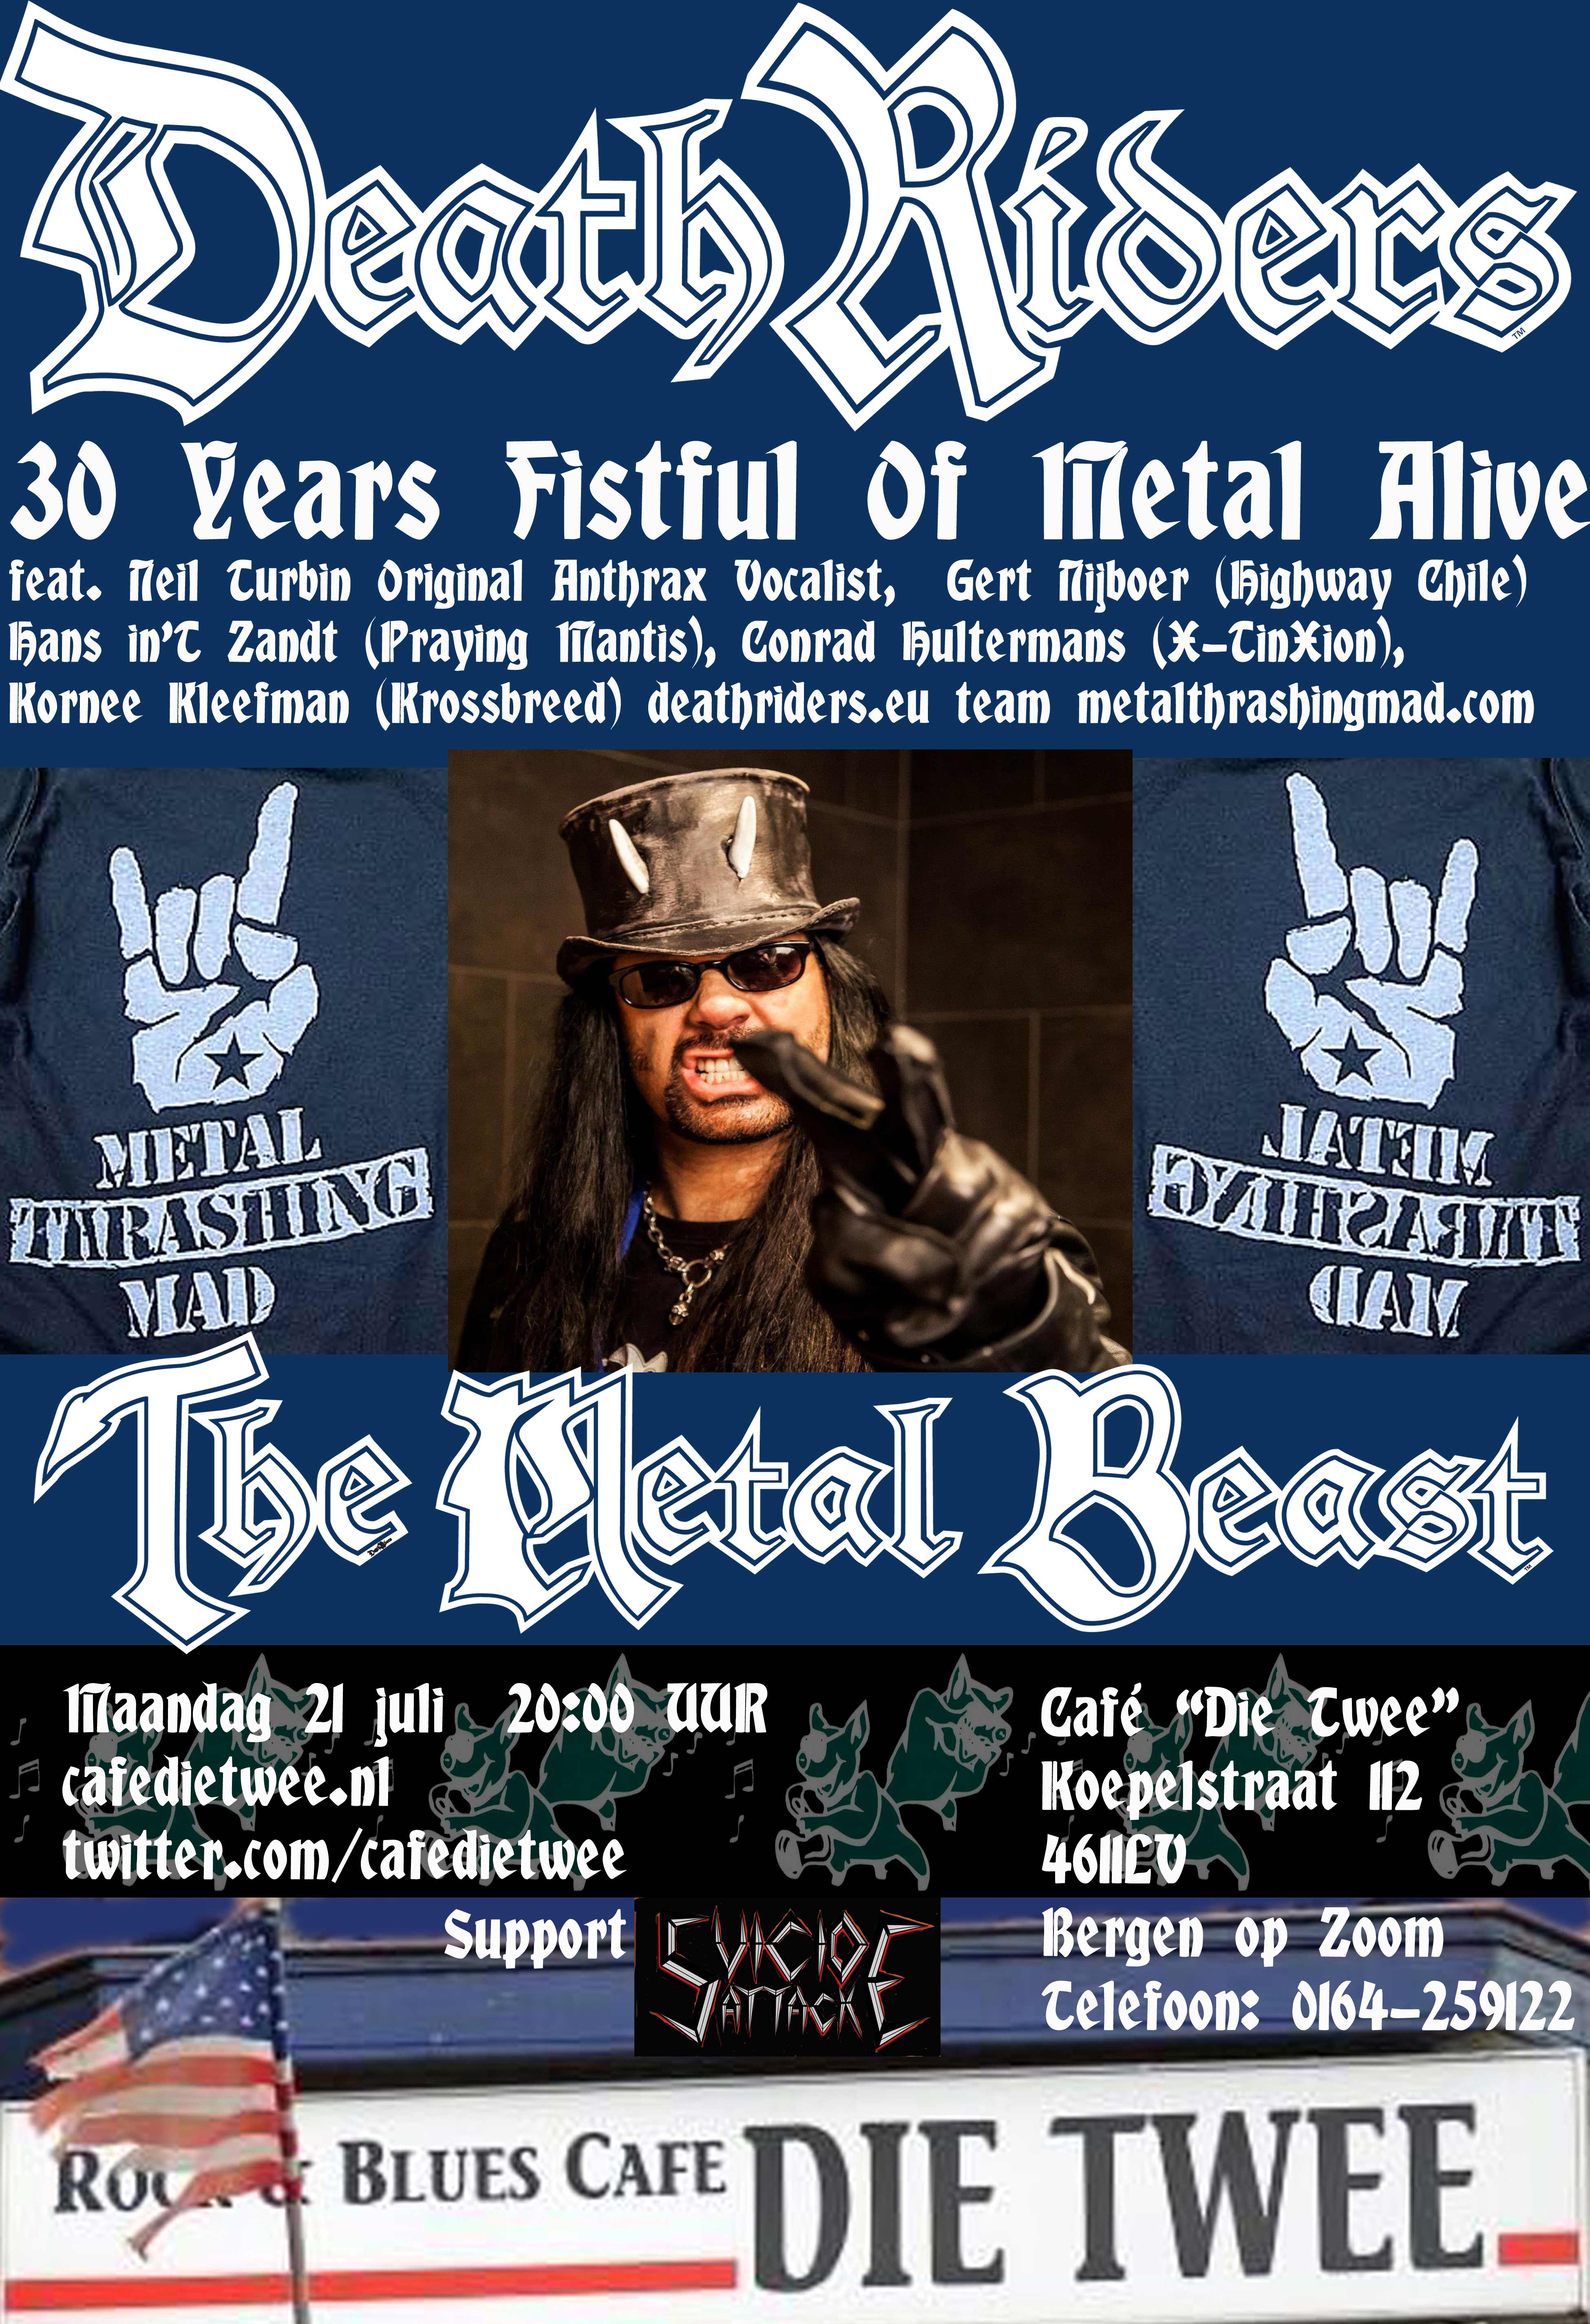 DeathRiders Cafe Die Twee Bergen op Zoom, NL - Fistful Of Metal Alive 30 Years Anniversary Europe